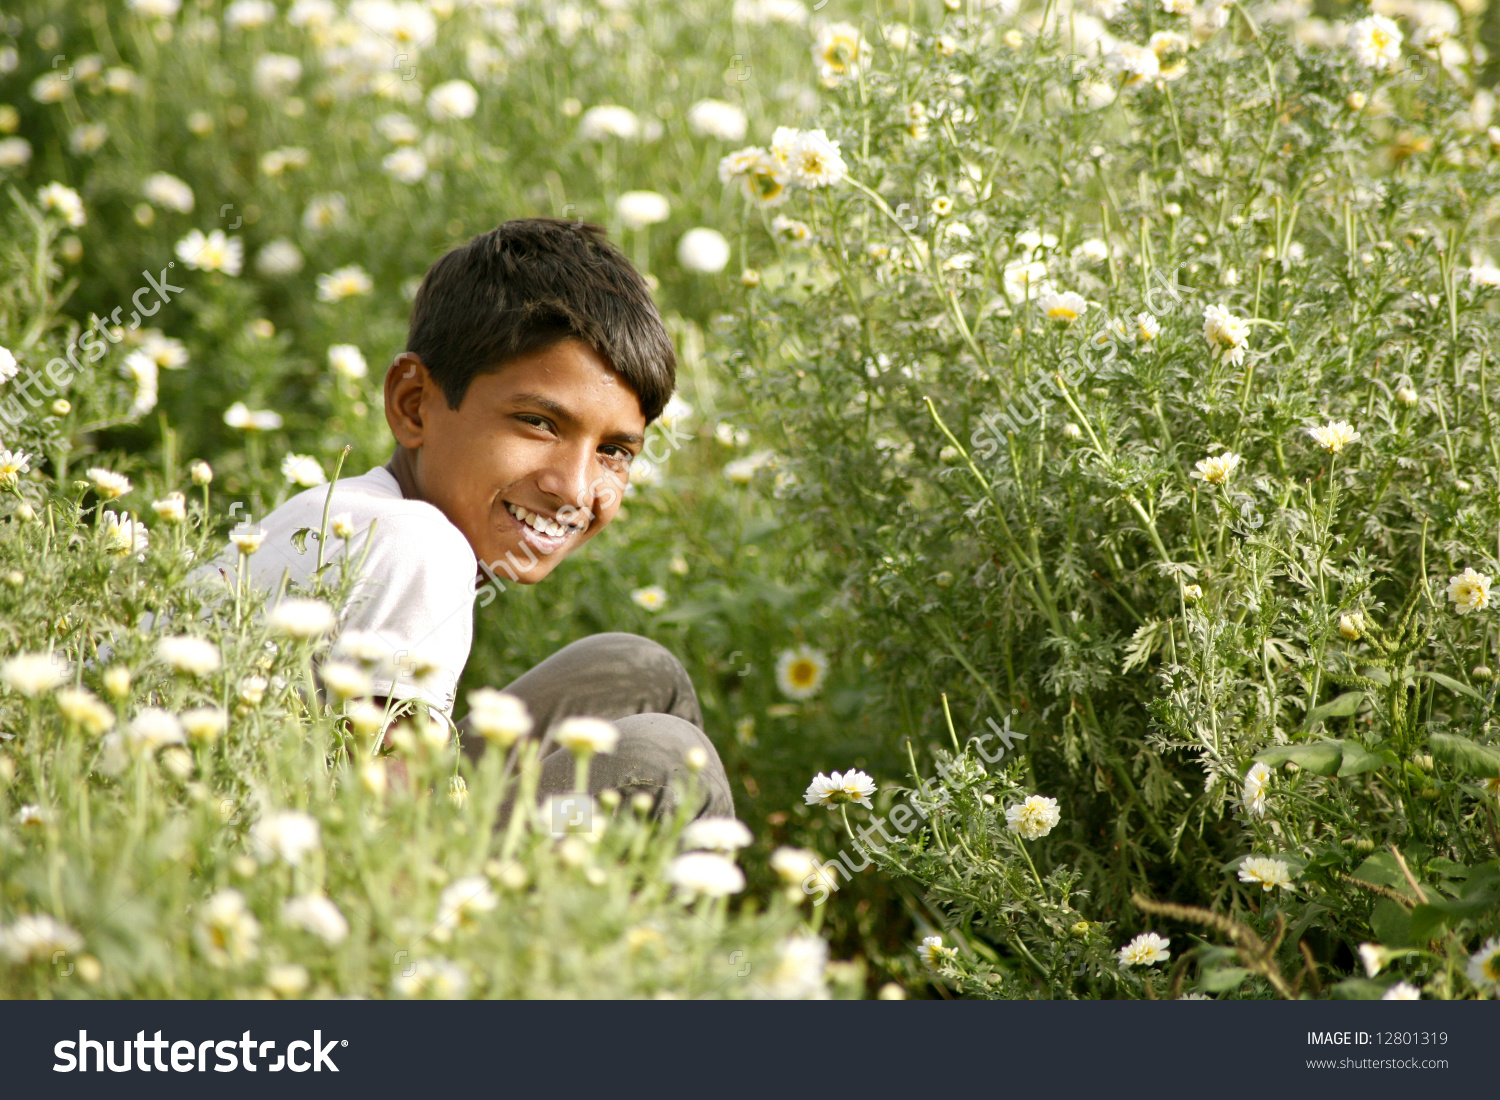 Young Rajasthani Boy Plucking Flowers Daisy Stock Photo 12801319.